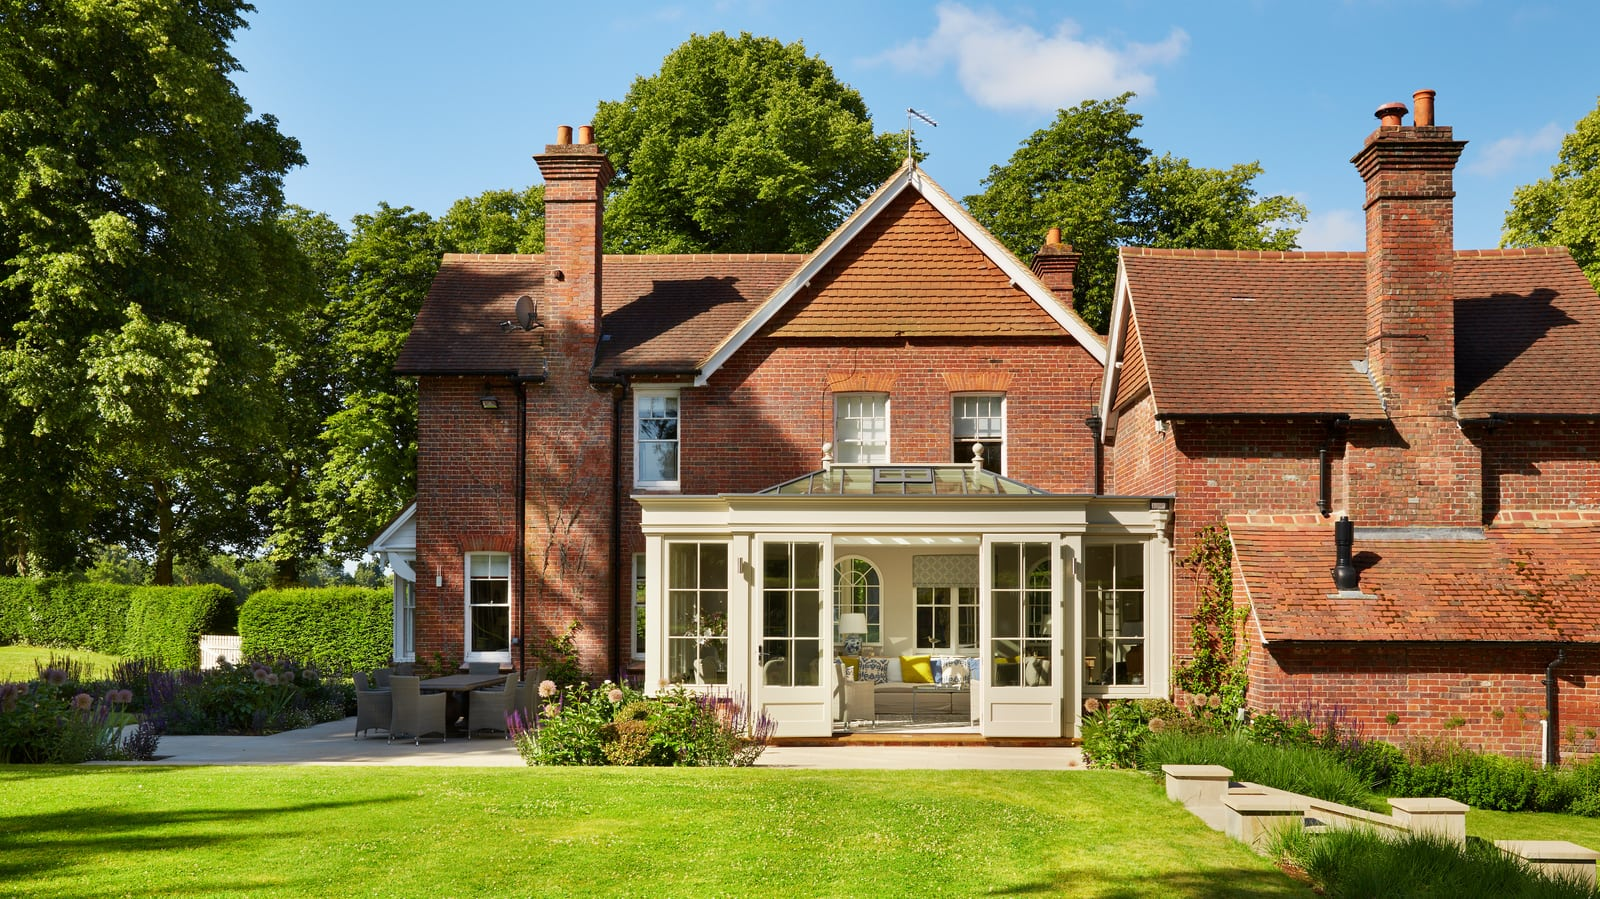 Generous detached Victorian property in the country with timber orangery extension